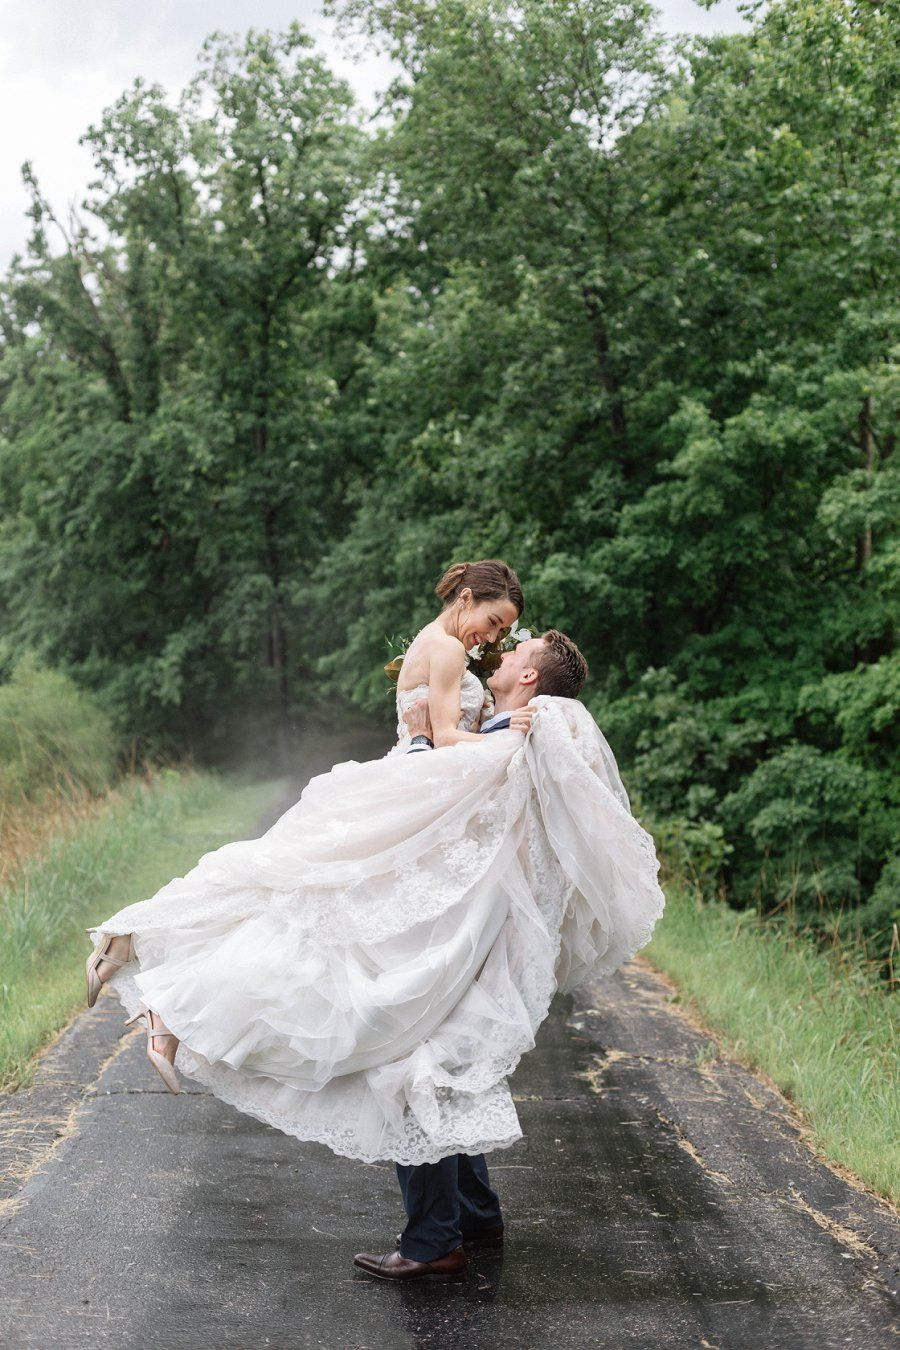 Anne of green gables wedding dress  This gal takes amazing photos  Love this AbbyNoelle  Lathan